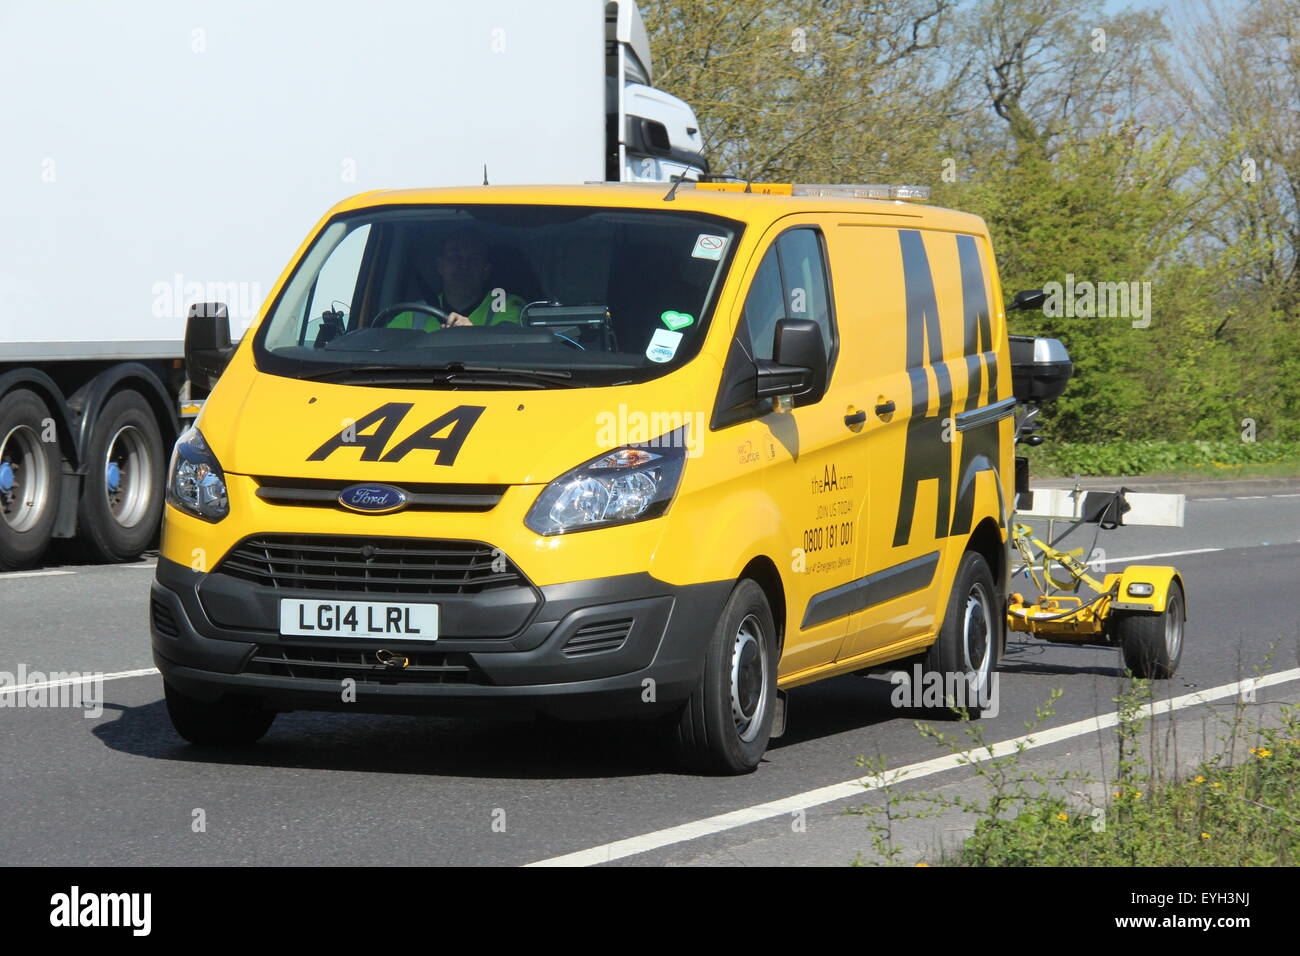 A 2014 AA BREAKDOWN RESCUE YELLOW VAN DRIVING ALONG A MAIN A ROAD WITH A TRAILER CARRYING A MOTORCYCLE - Stock Image